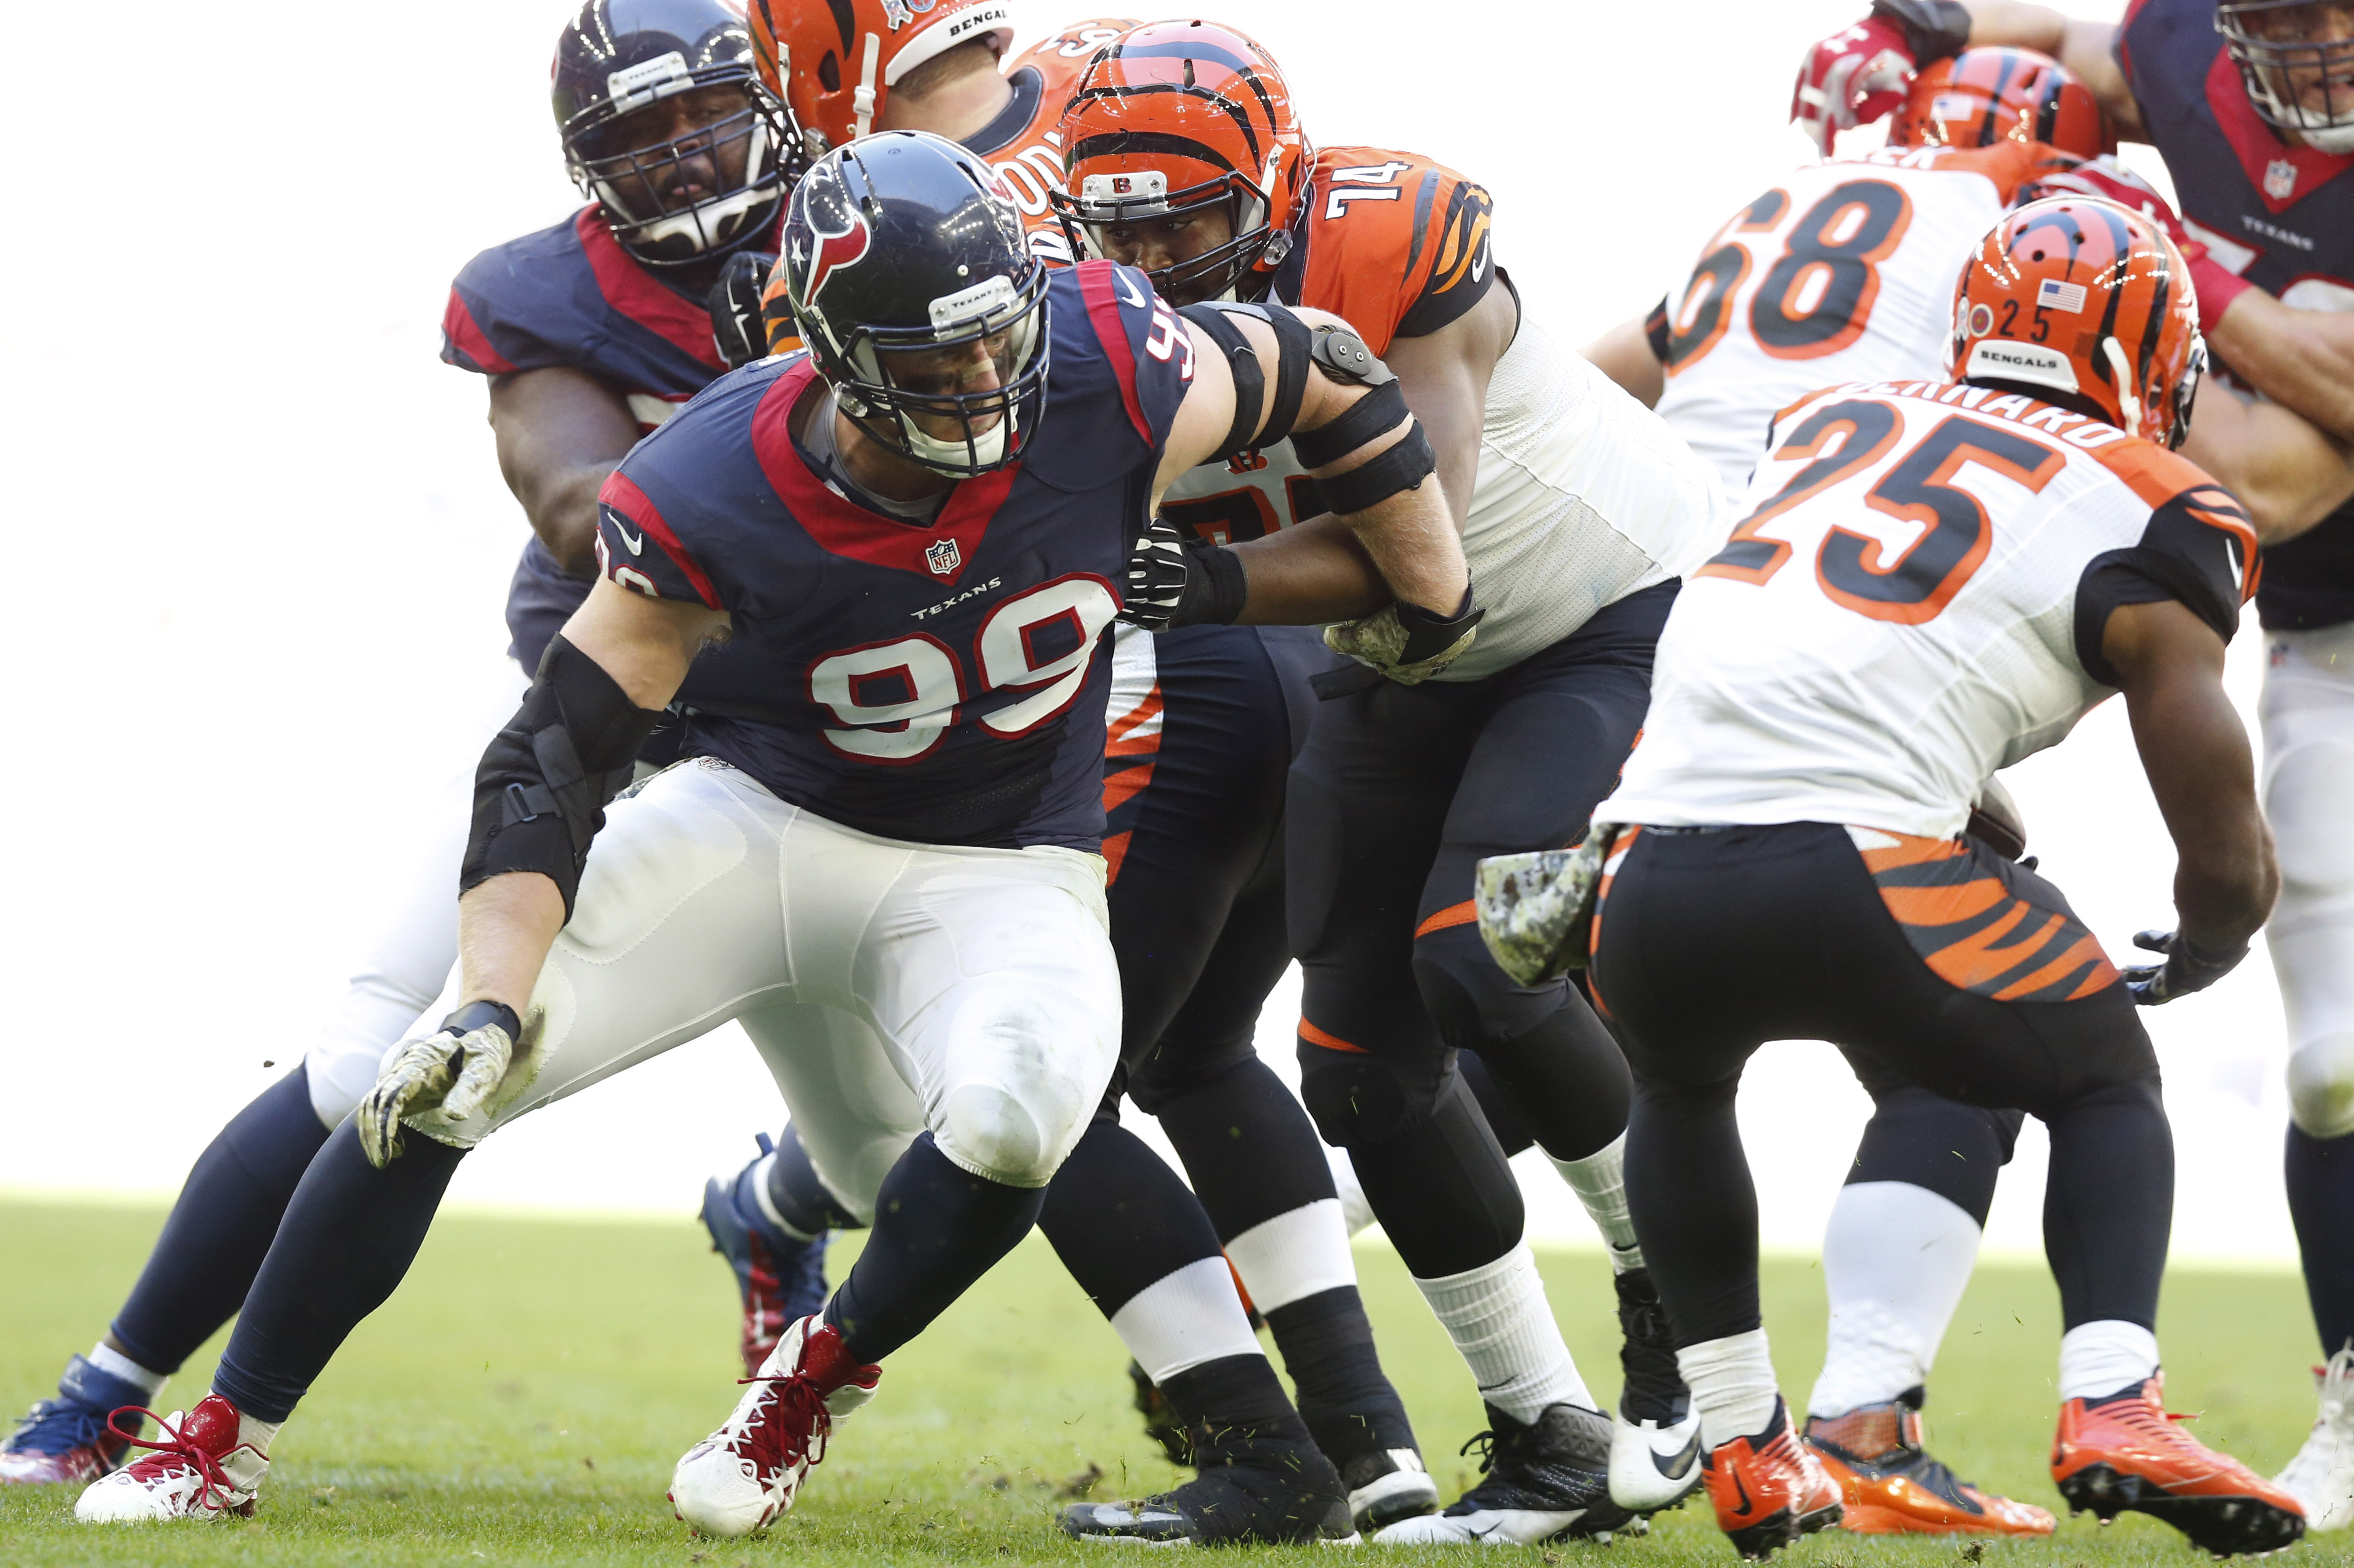 J.J. Watt hopes to recreate some magic from past performances against the Bengals